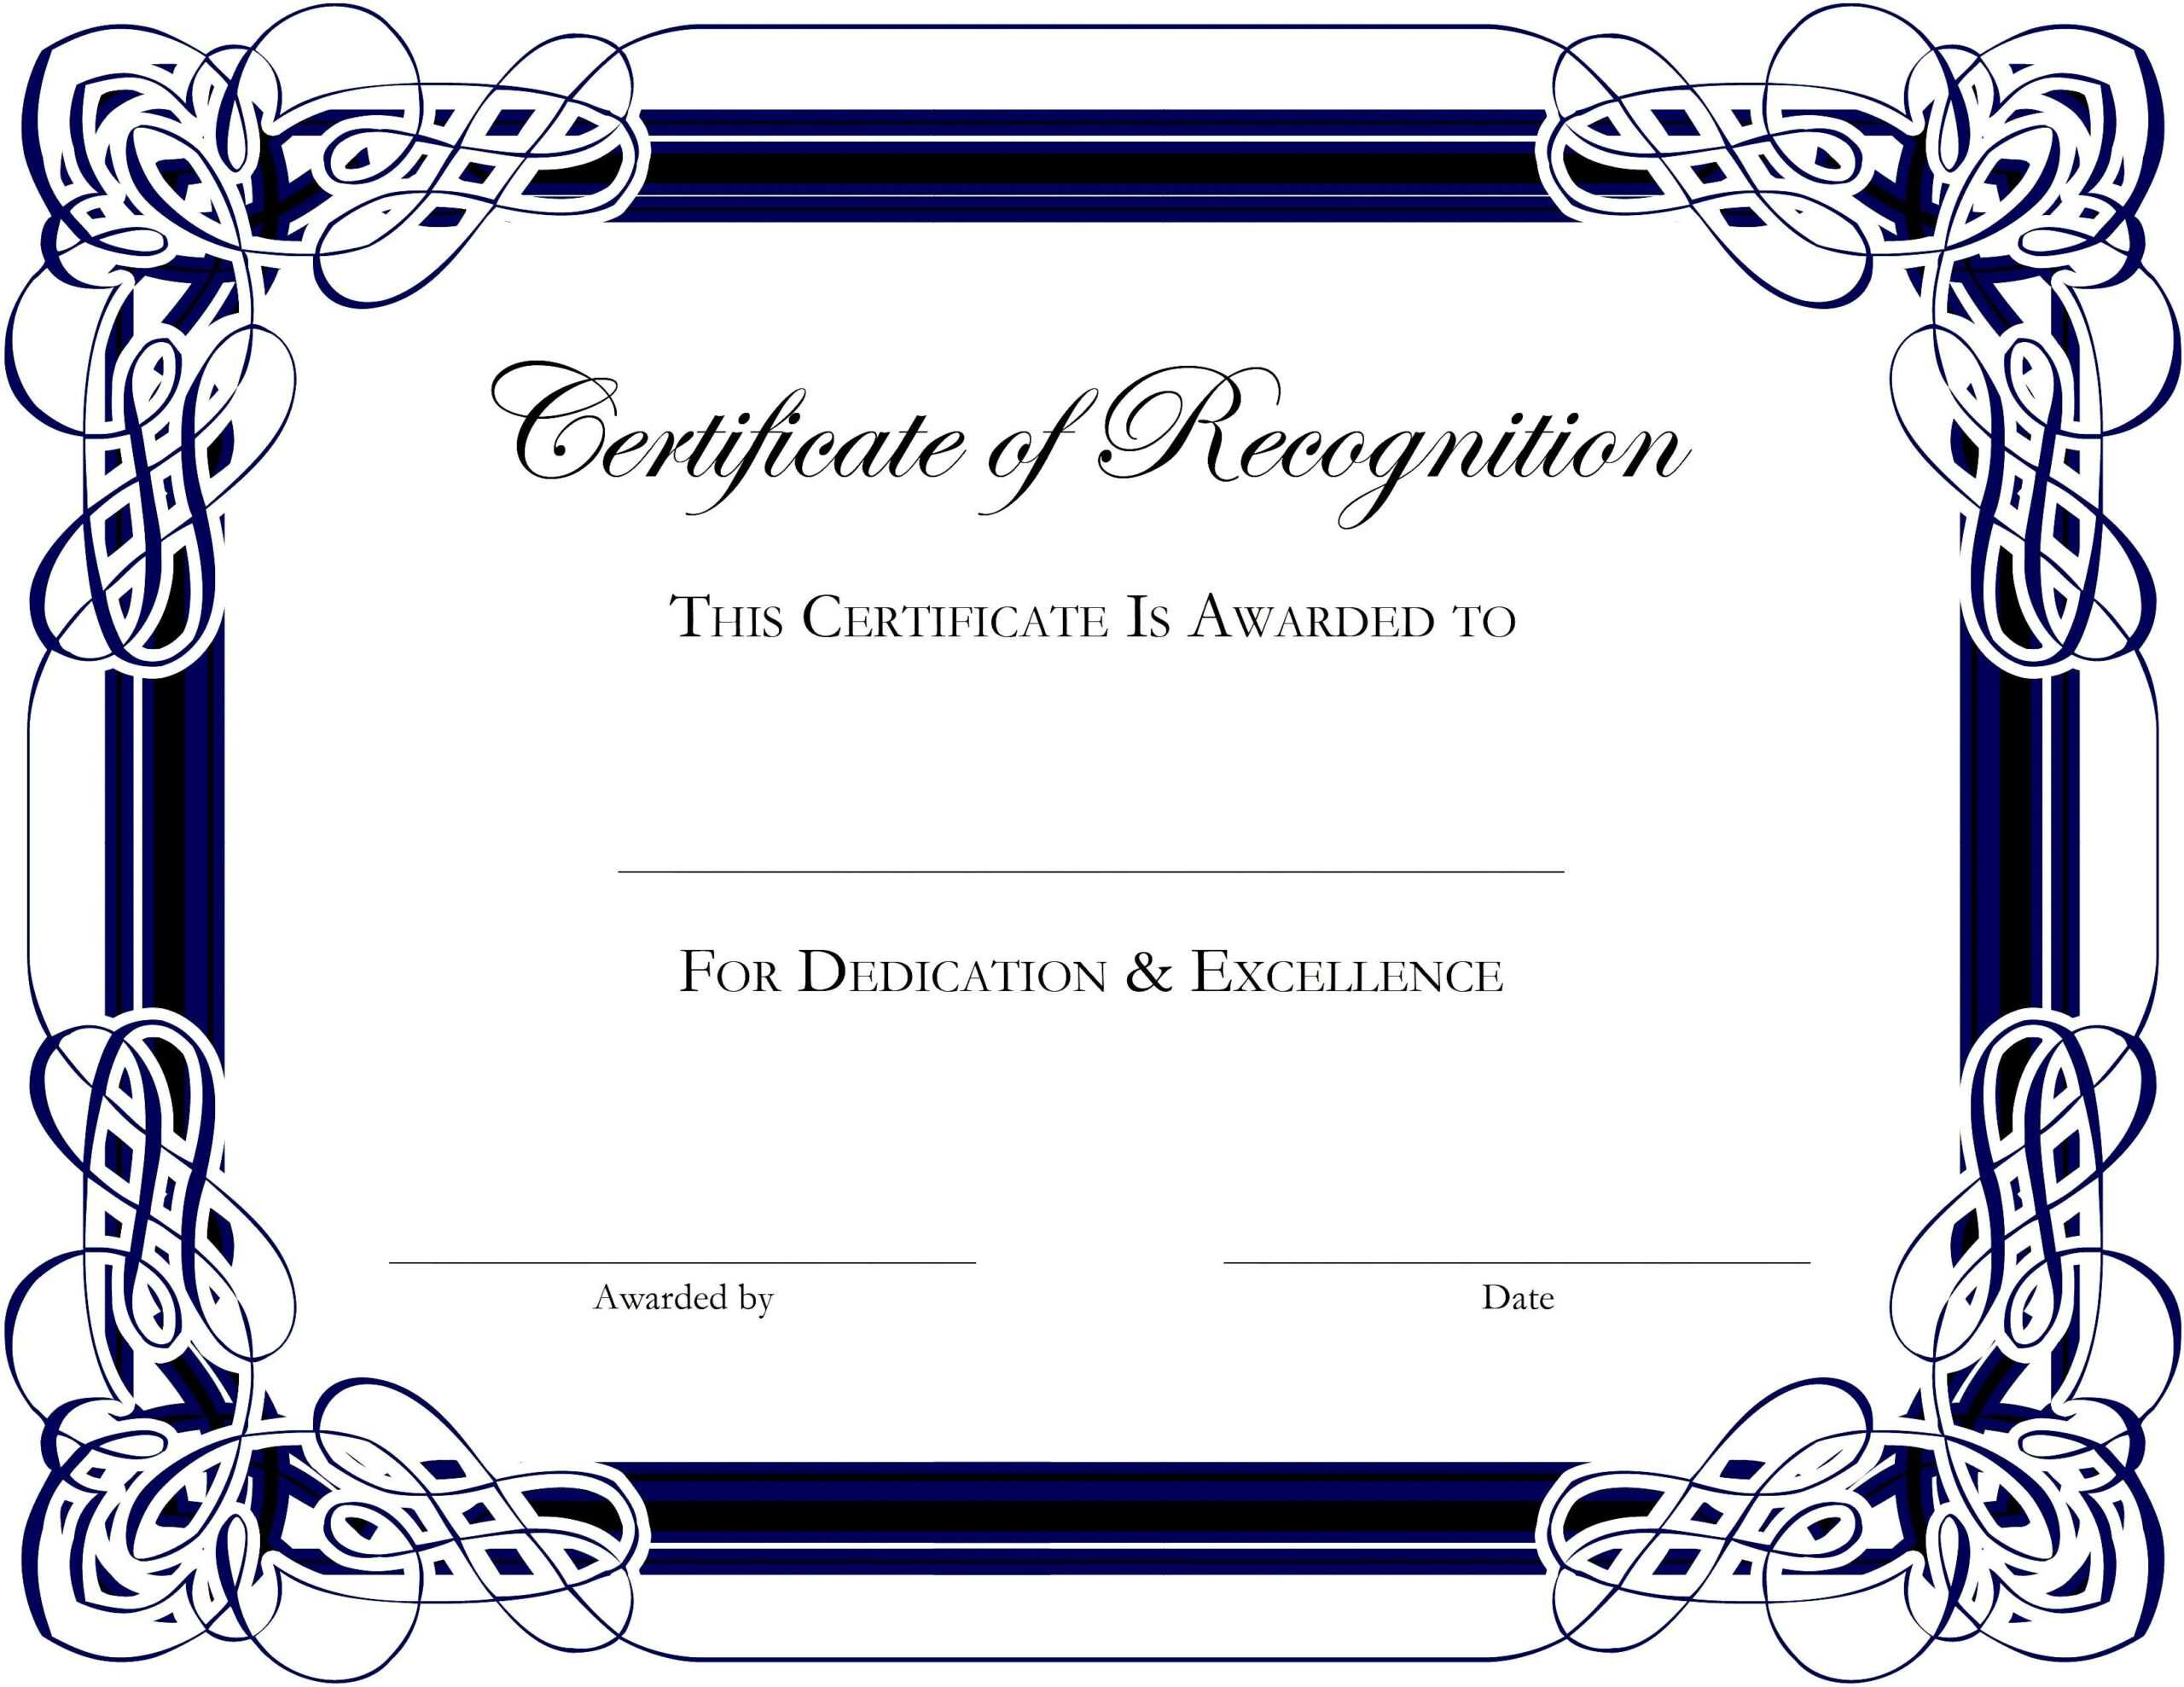 Award Templates For Microsoft Publisher   Besttemplate123 intended for Free Printable Graduation Certificate Templates